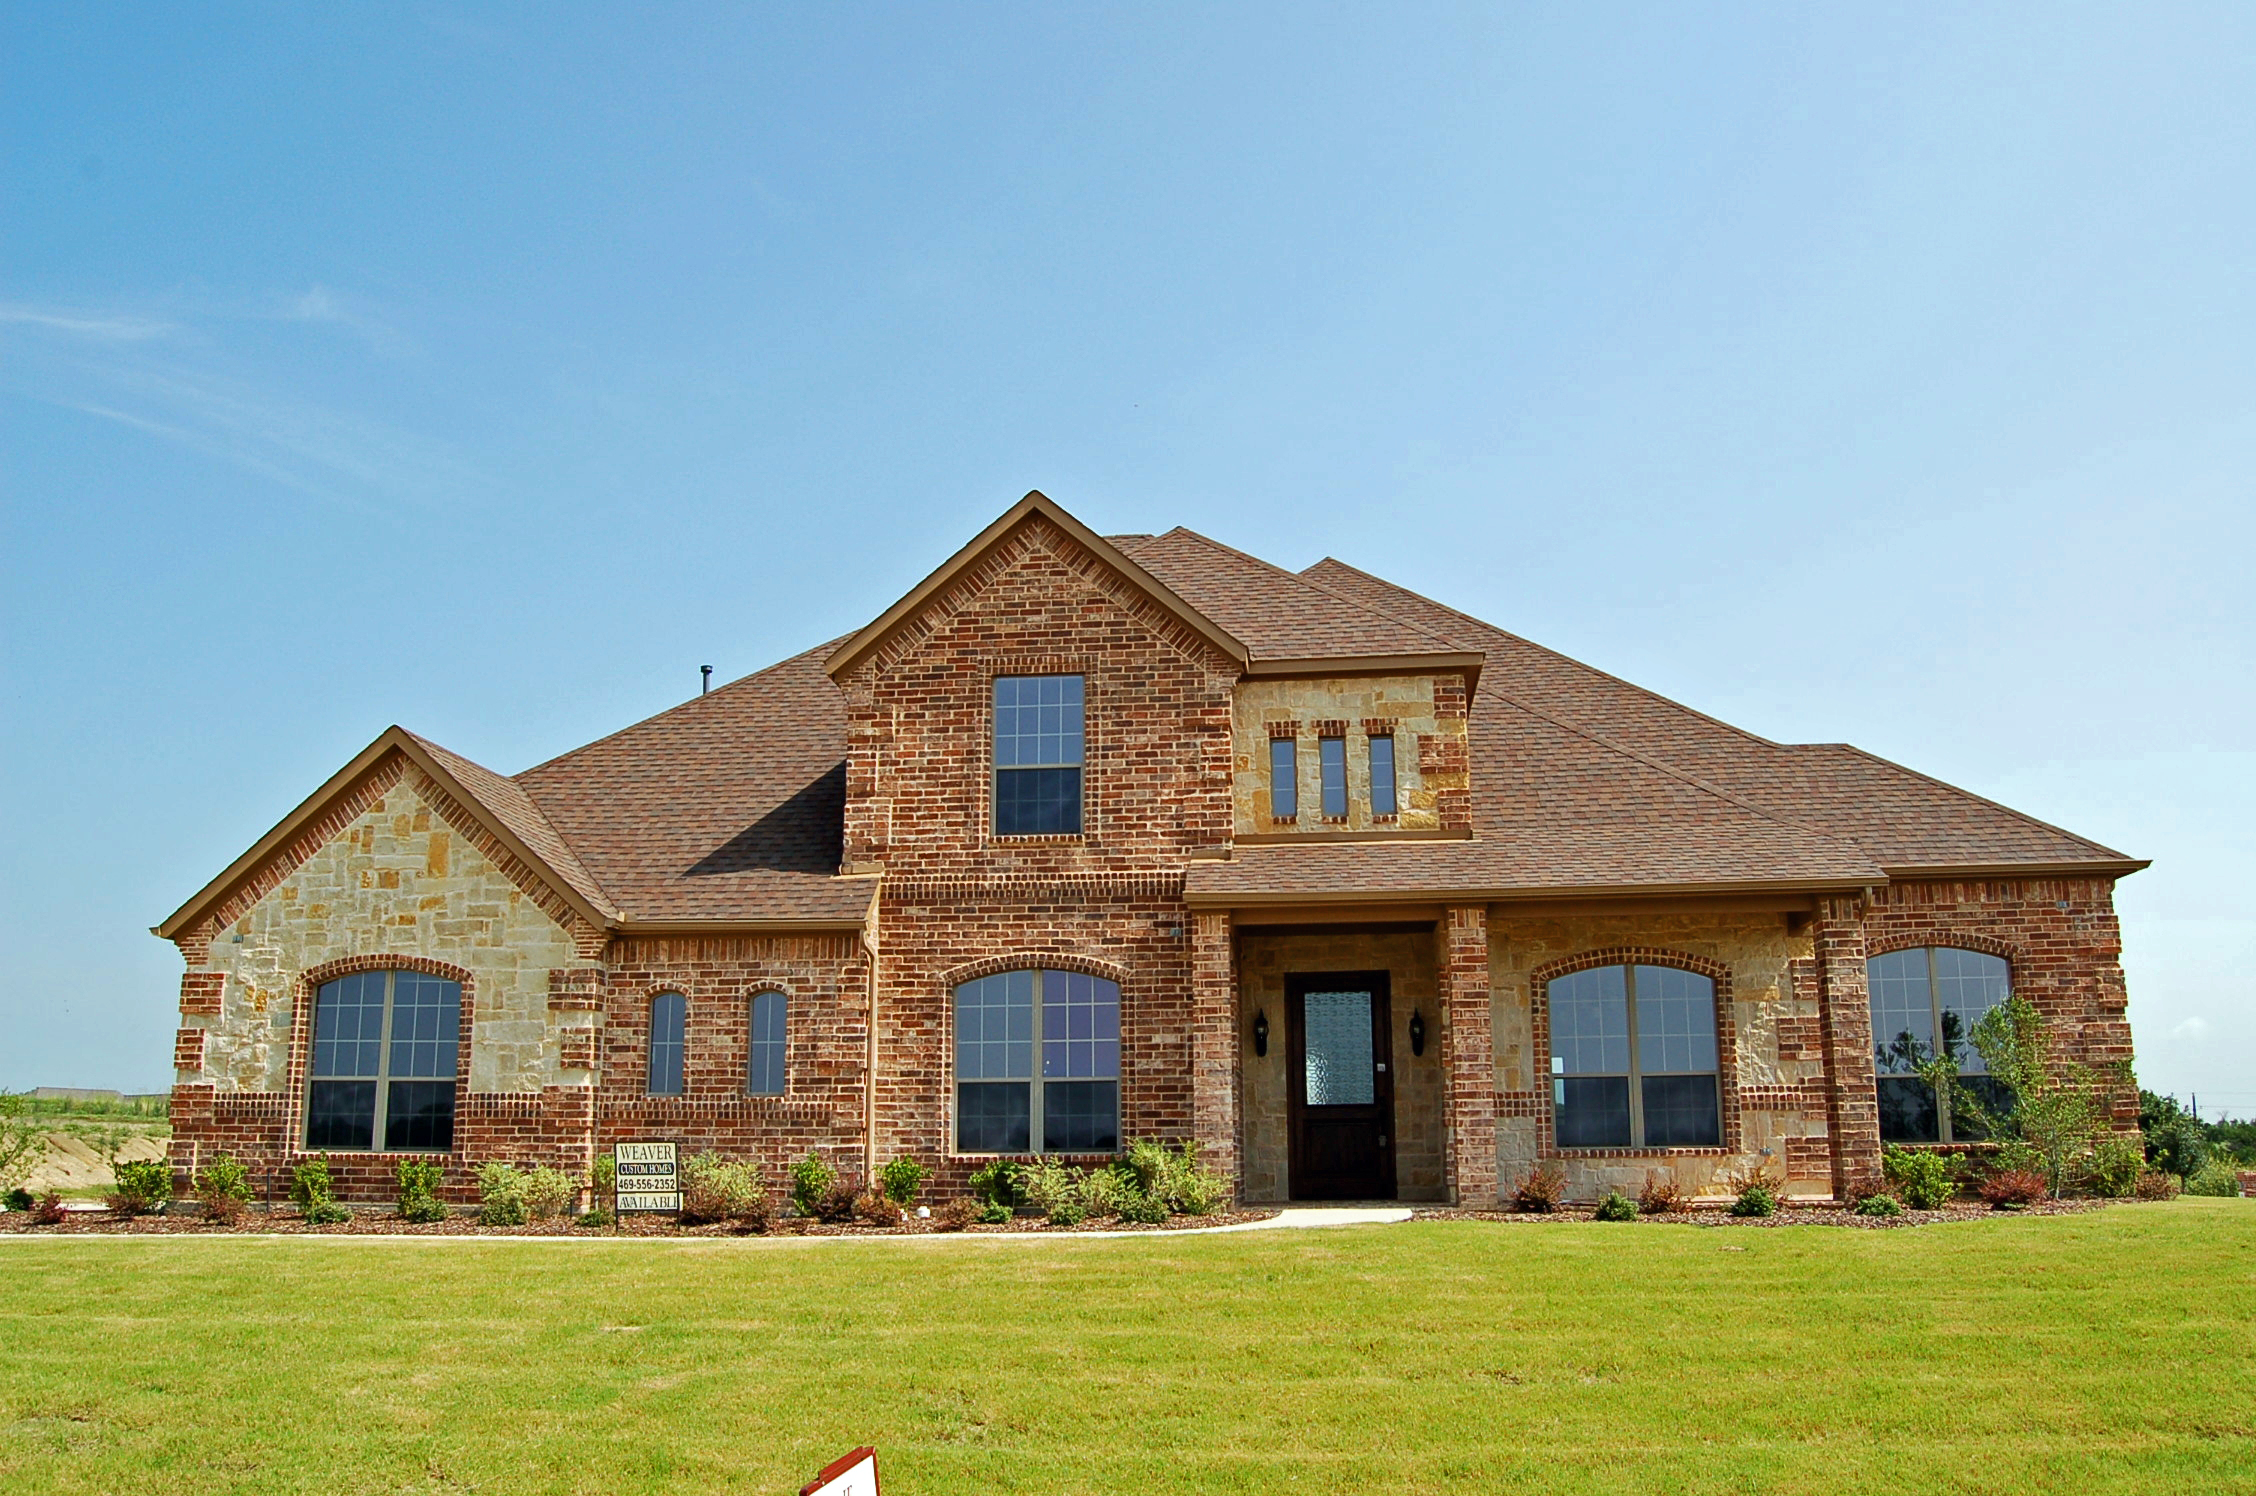 90 Carriage Trail in Gated & Guarded Community Close to Lucas, Plano, Richardson, Allen & Wylie